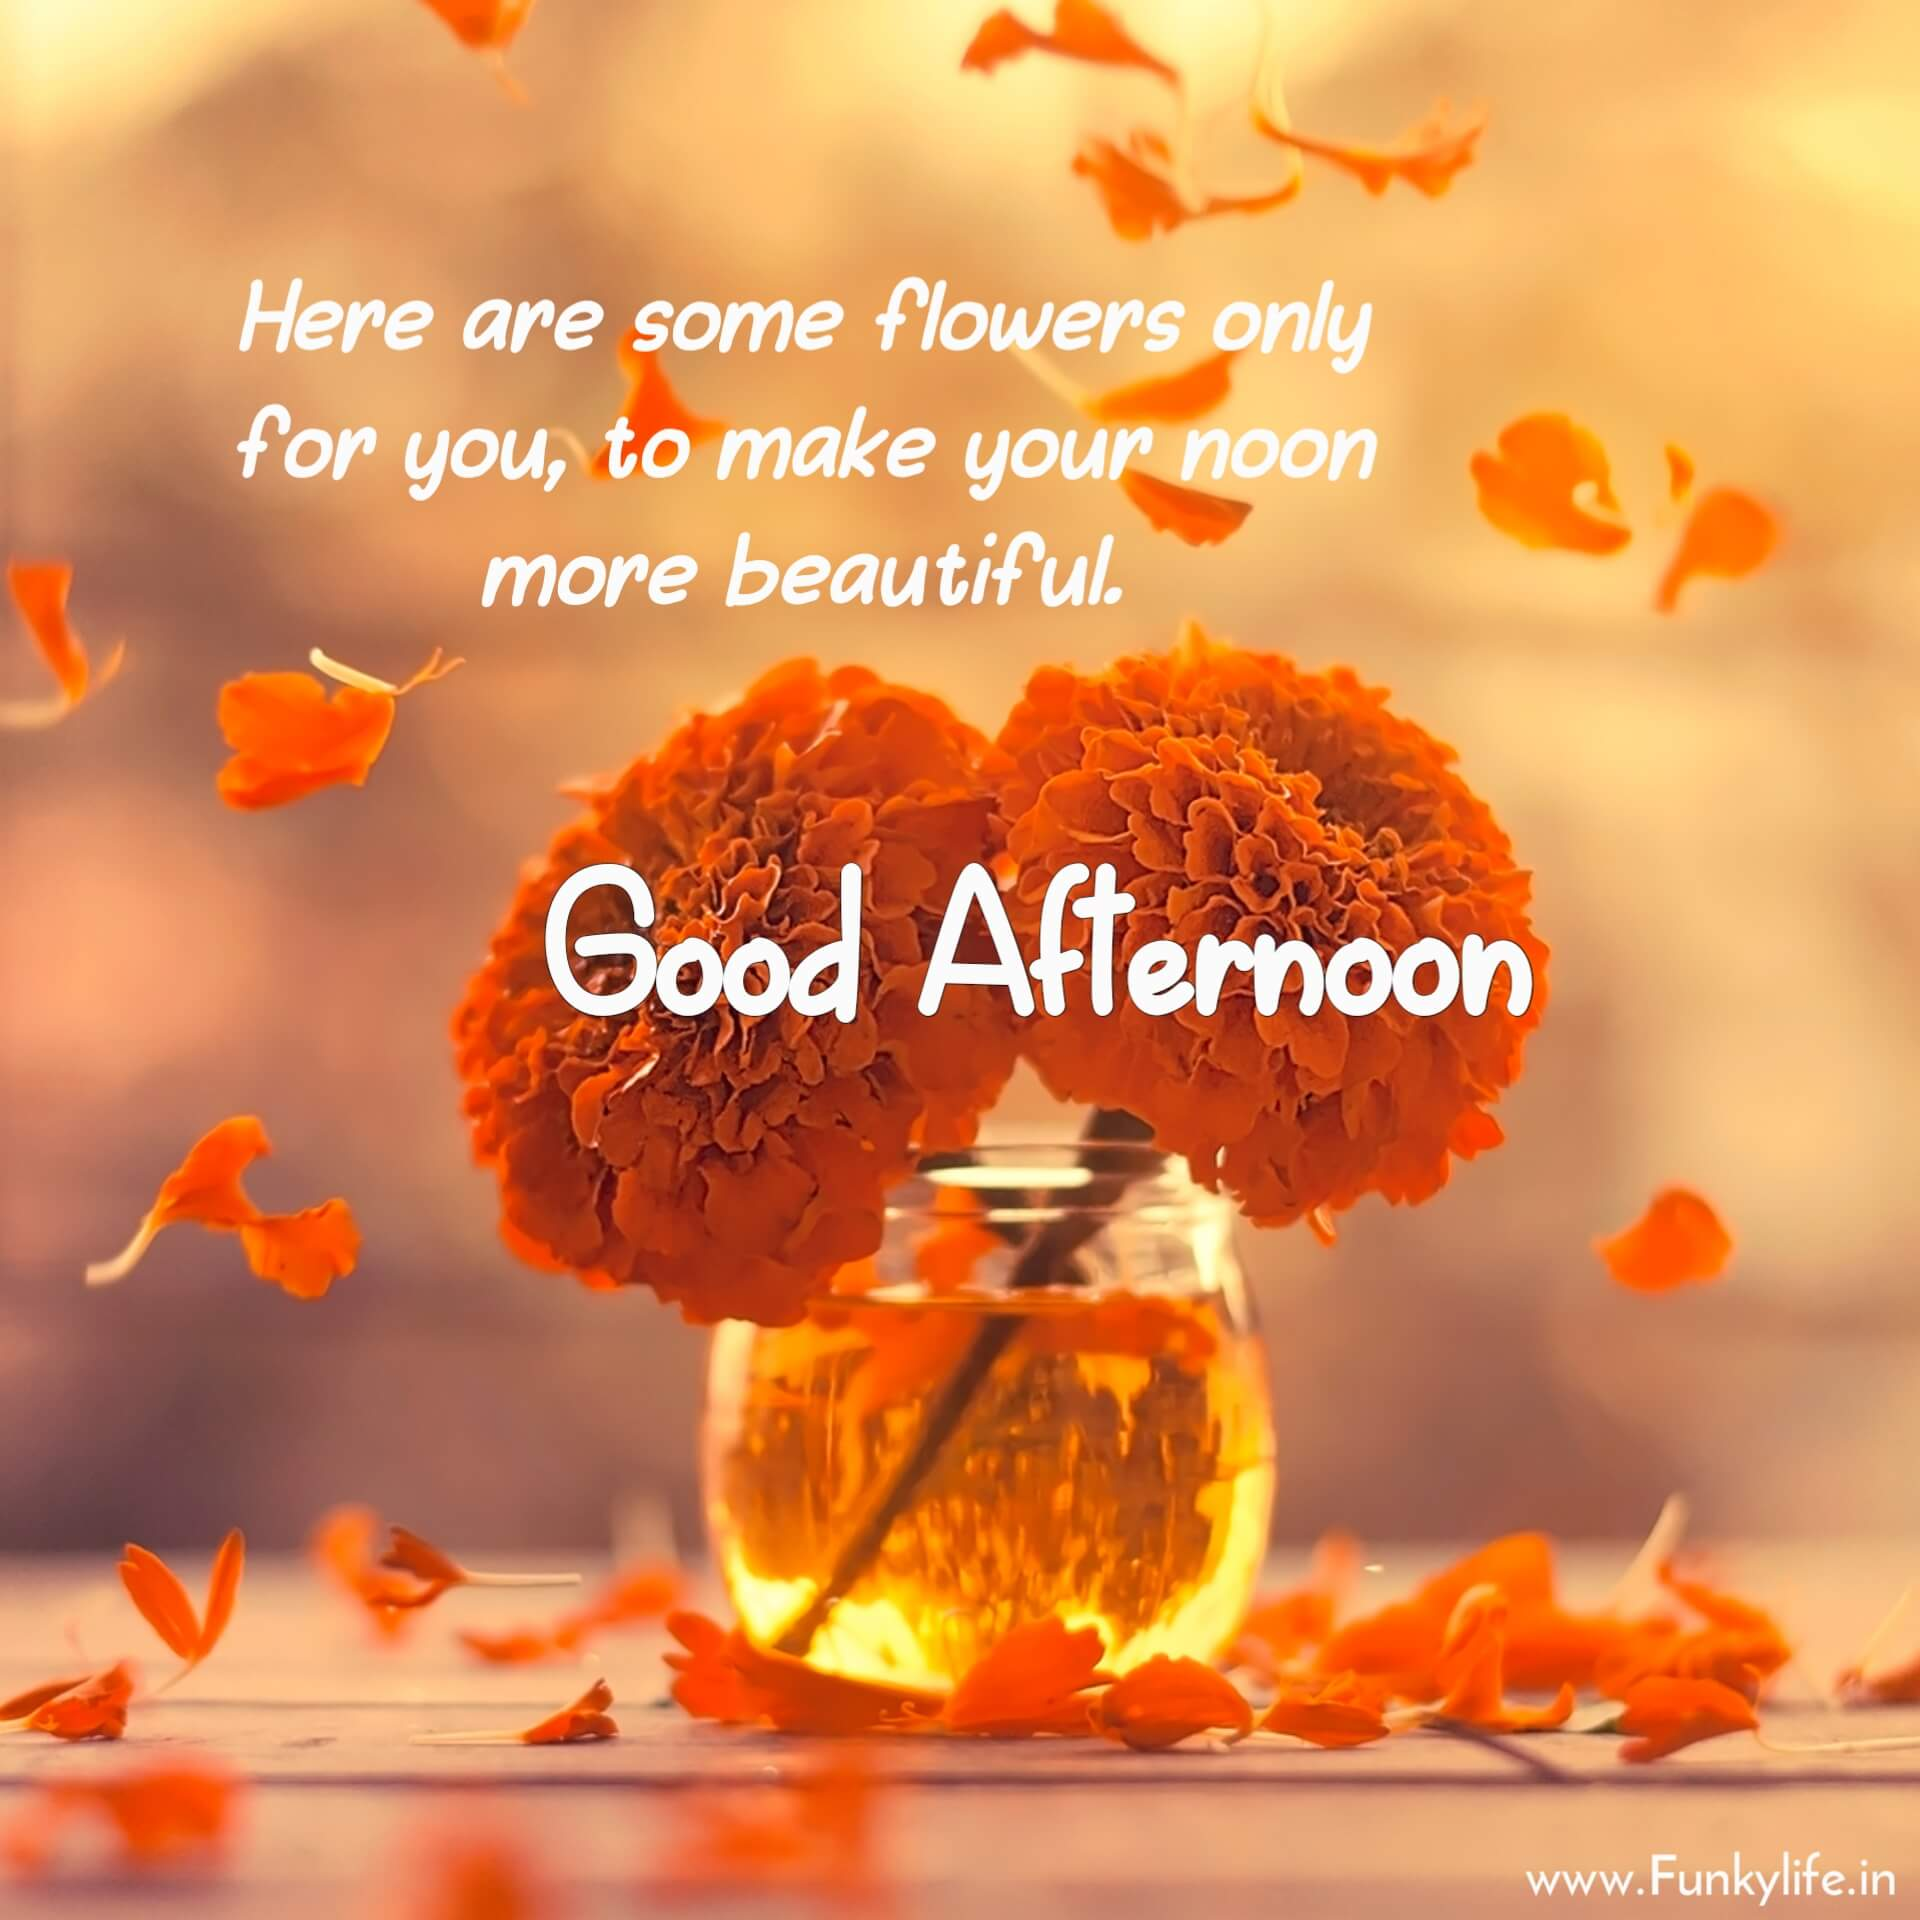 Good Afternoon Blessings Images with Quotes